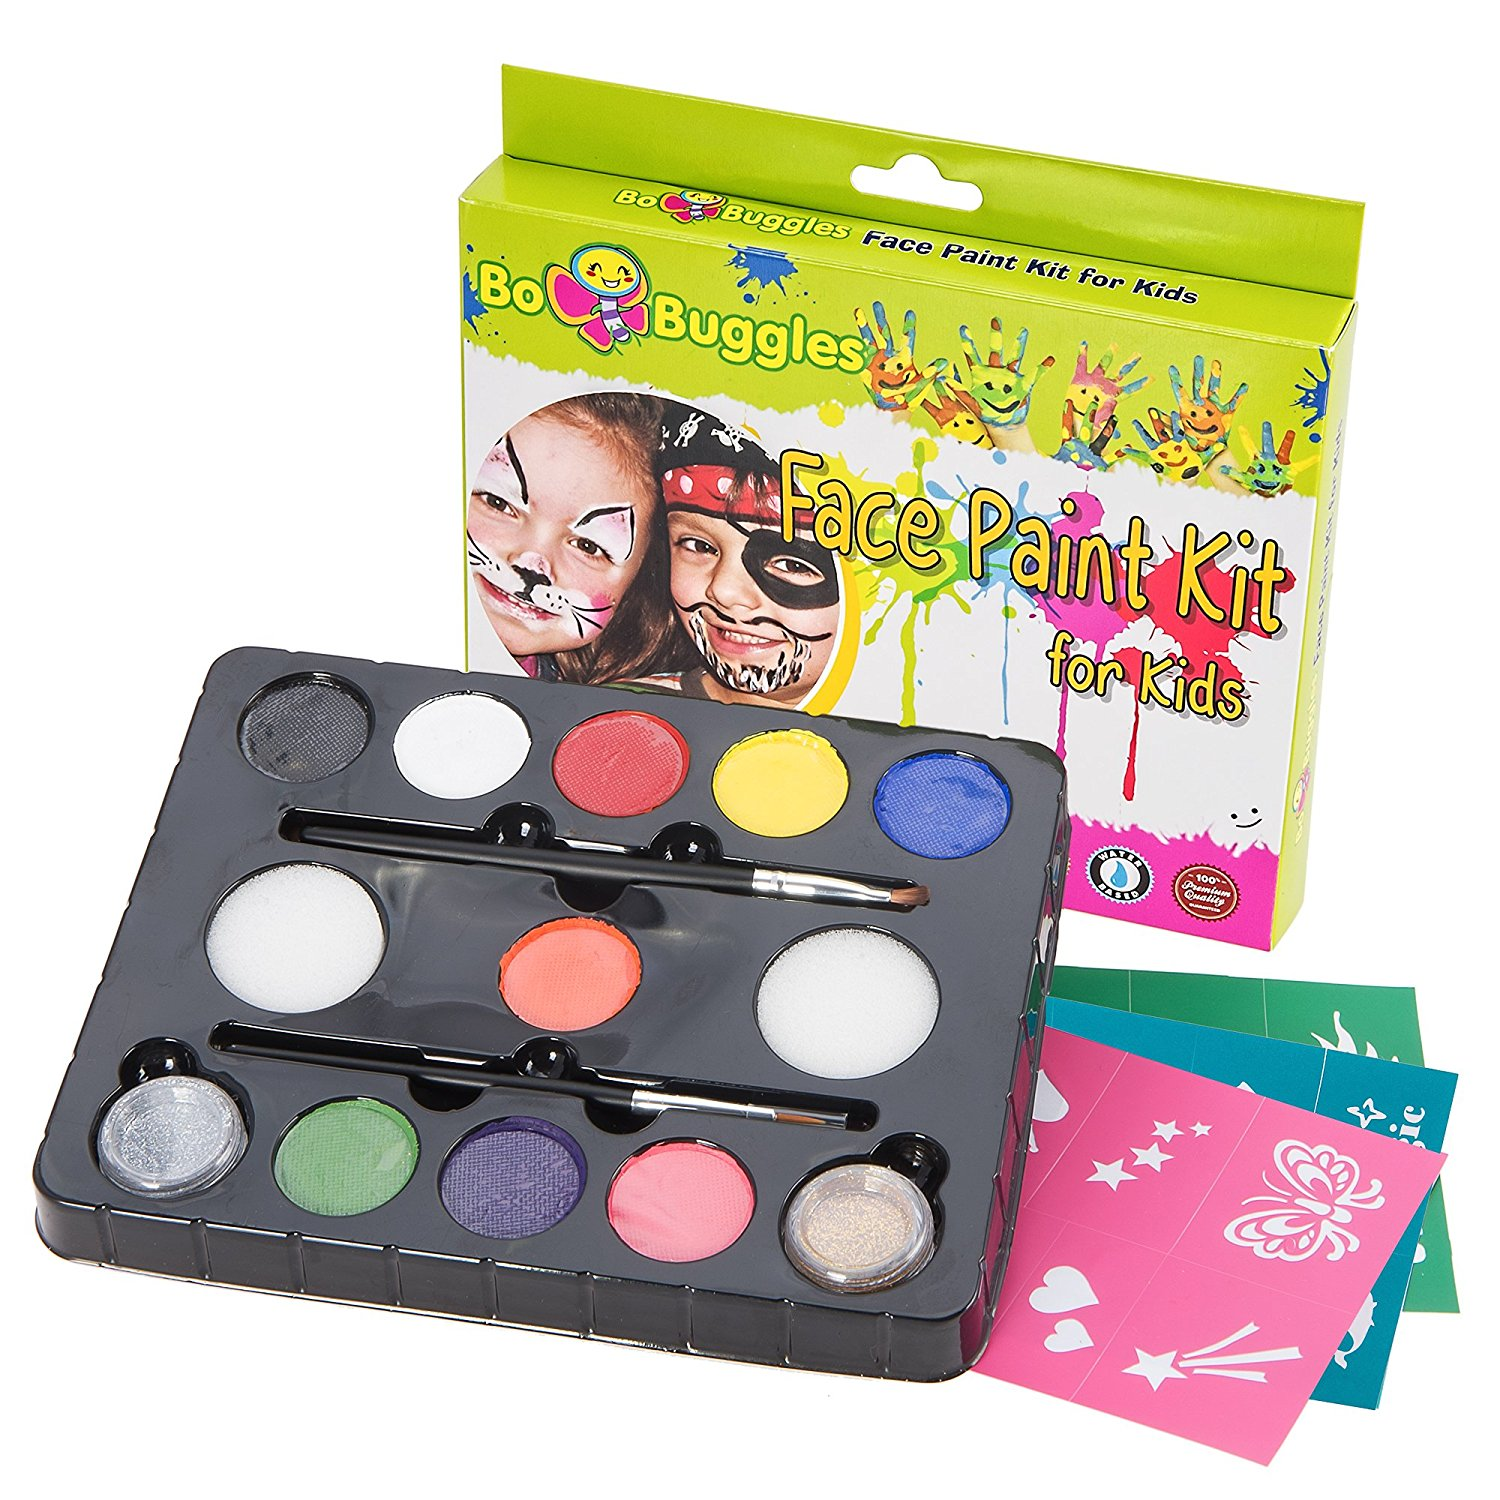 Bo Buggles Original Buggly Face Paint Kit